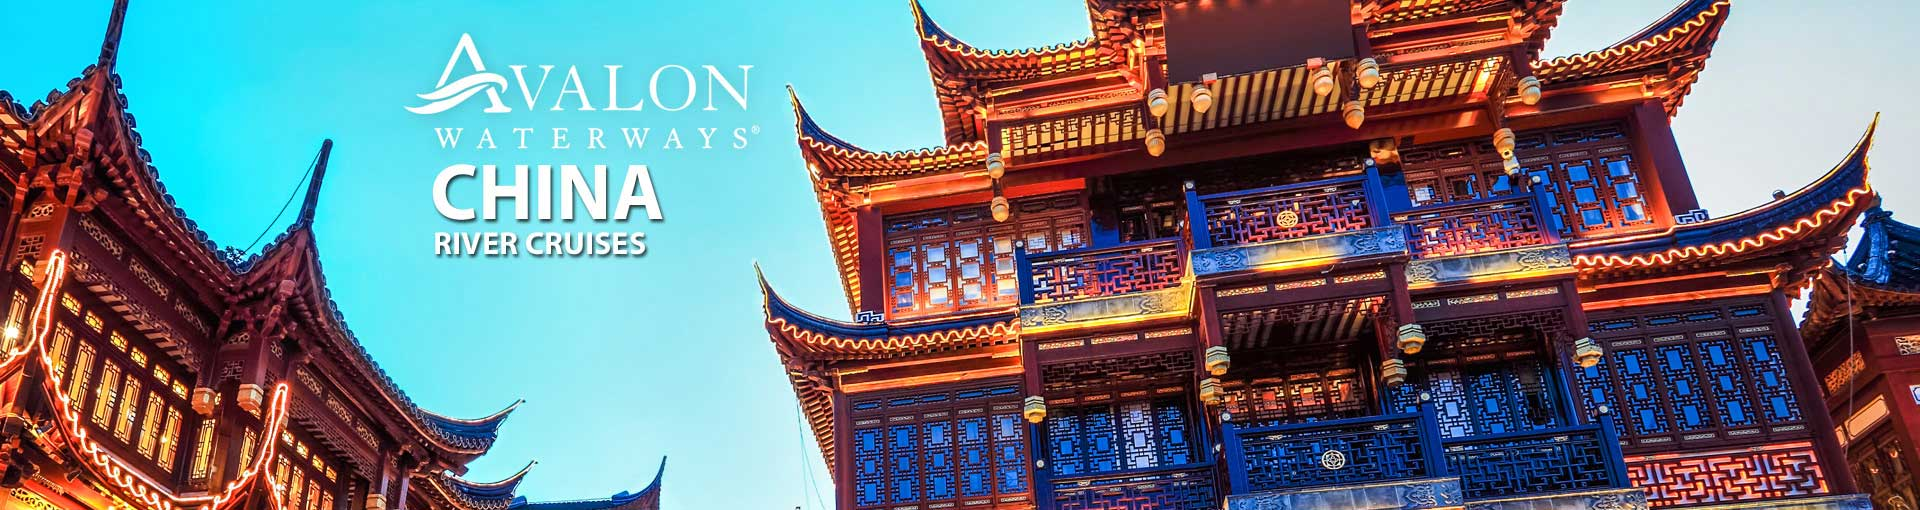 Avalon Waterways China River Cruises